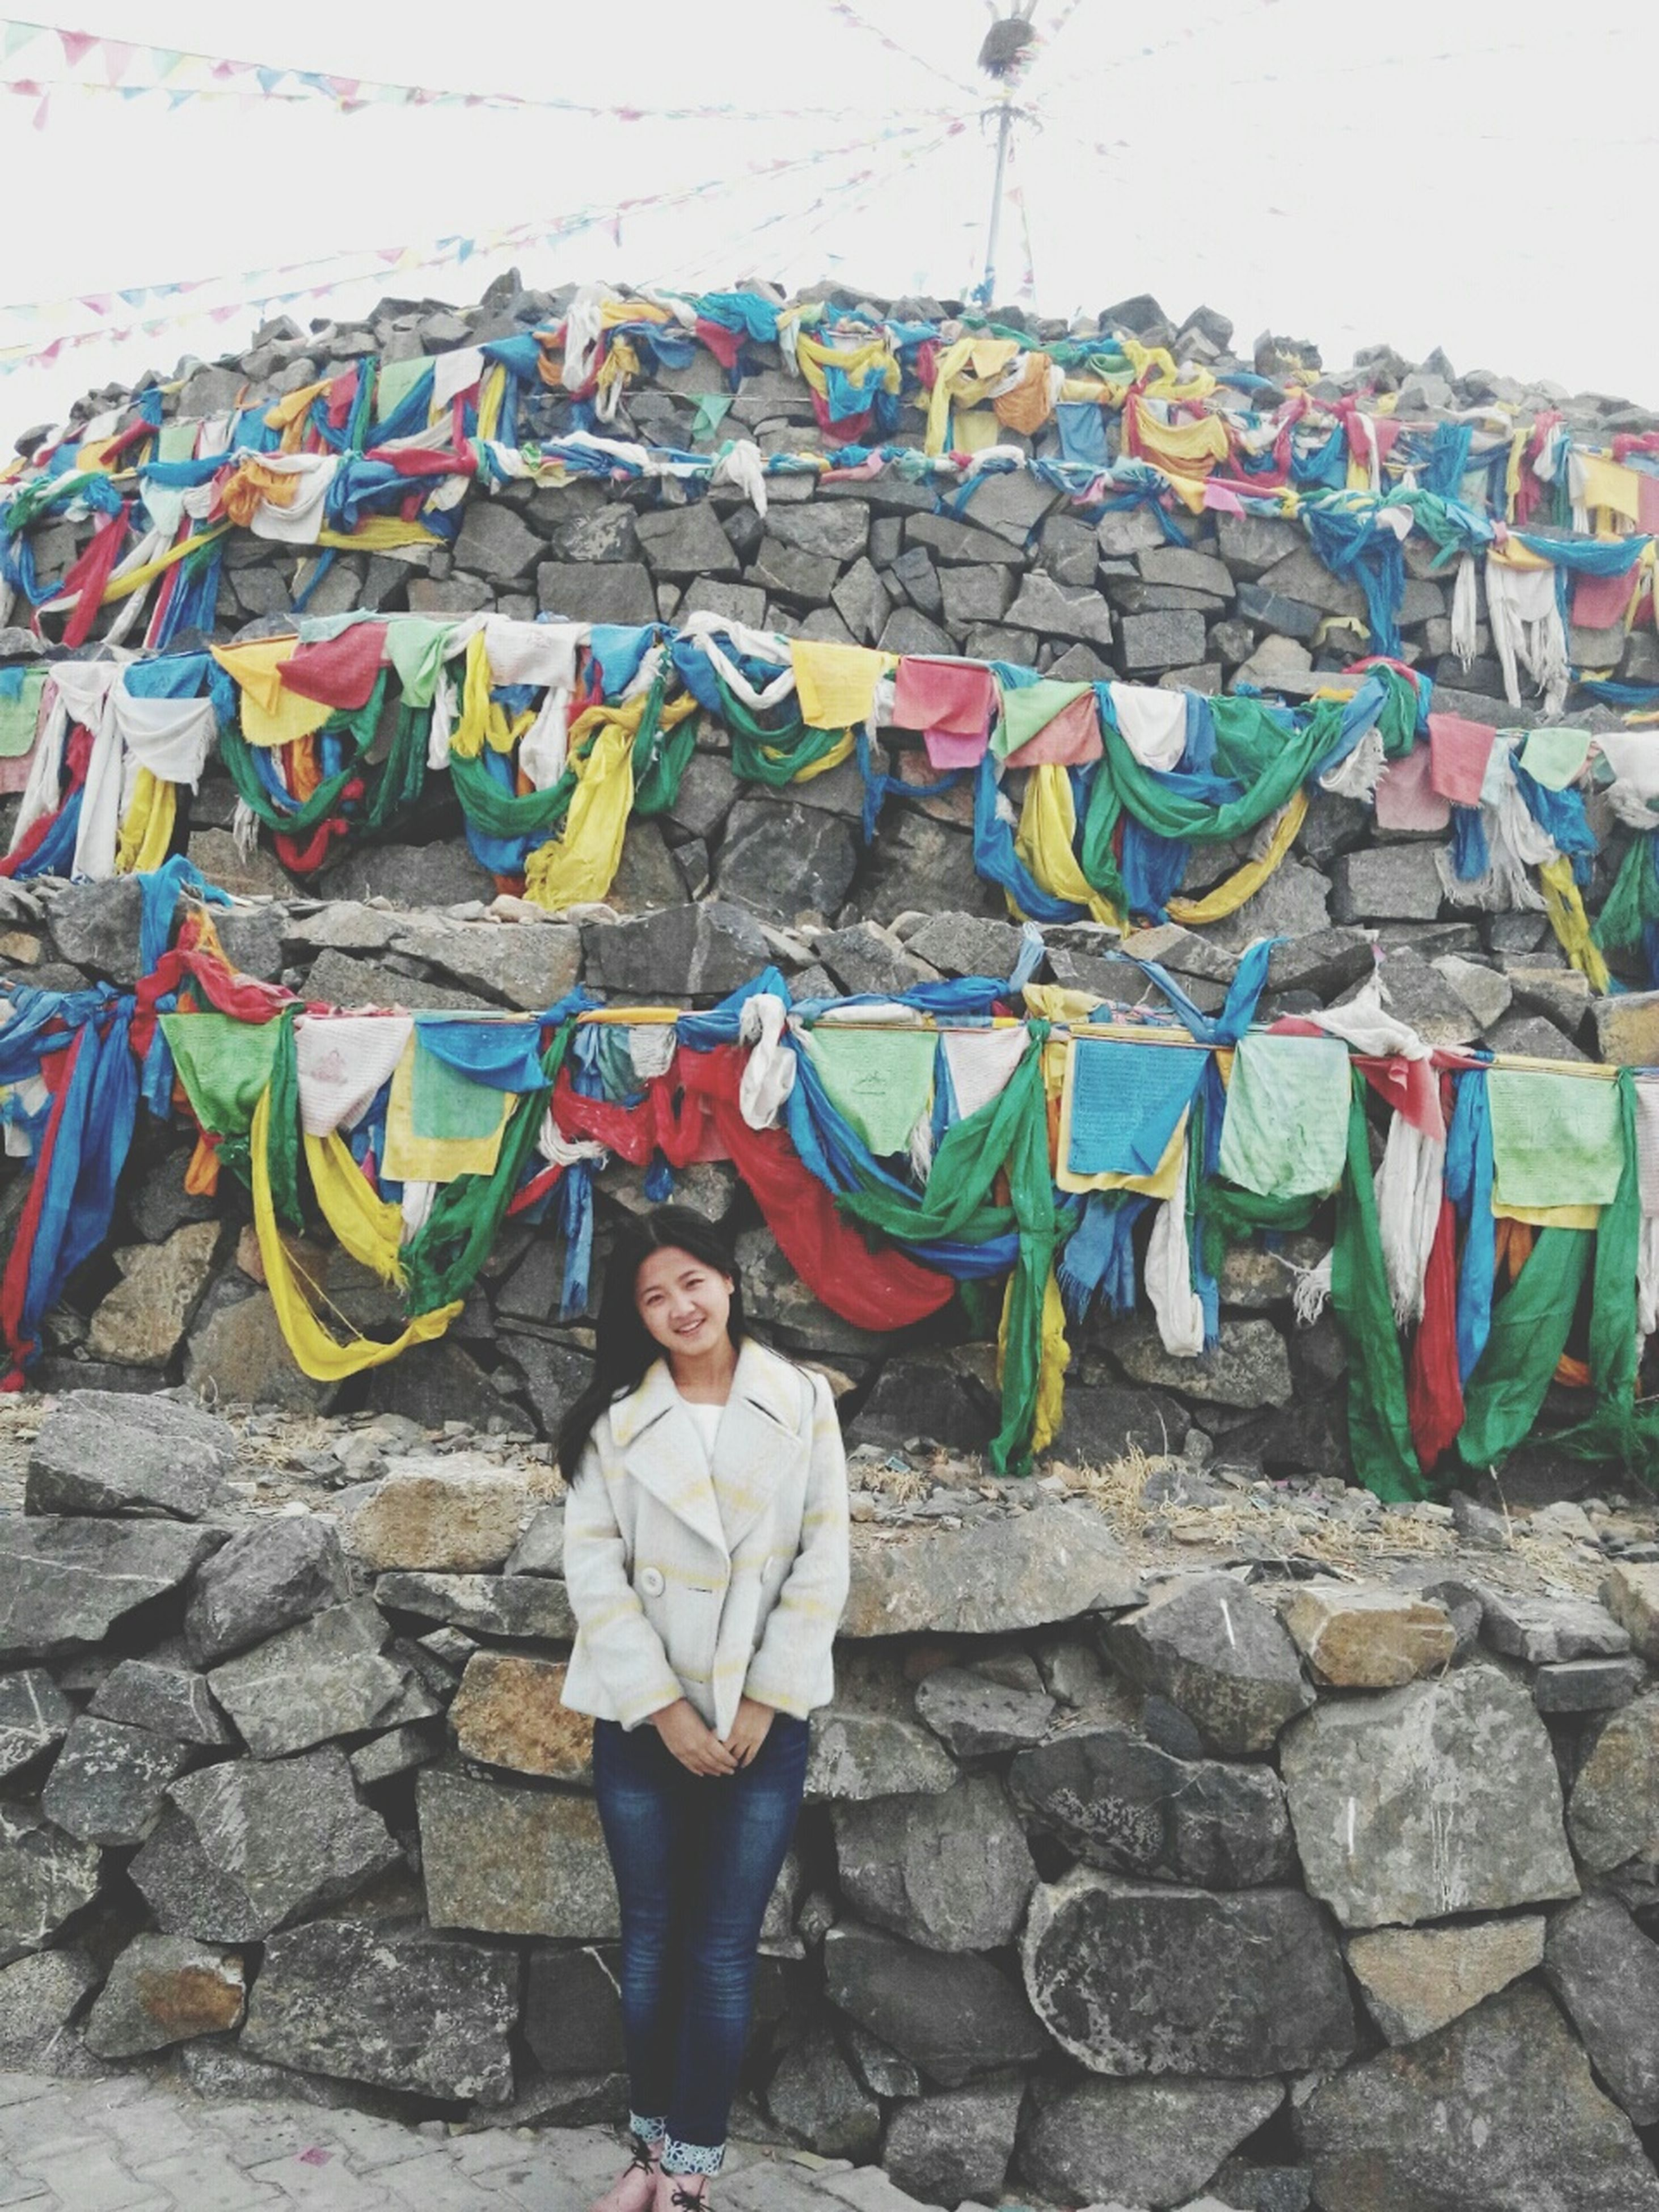 lifestyles, casual clothing, leisure activity, full length, standing, multi colored, traditional clothing, person, graffiti, built structure, looking at camera, wall - building feature, day, young adult, front view, men, outdoors